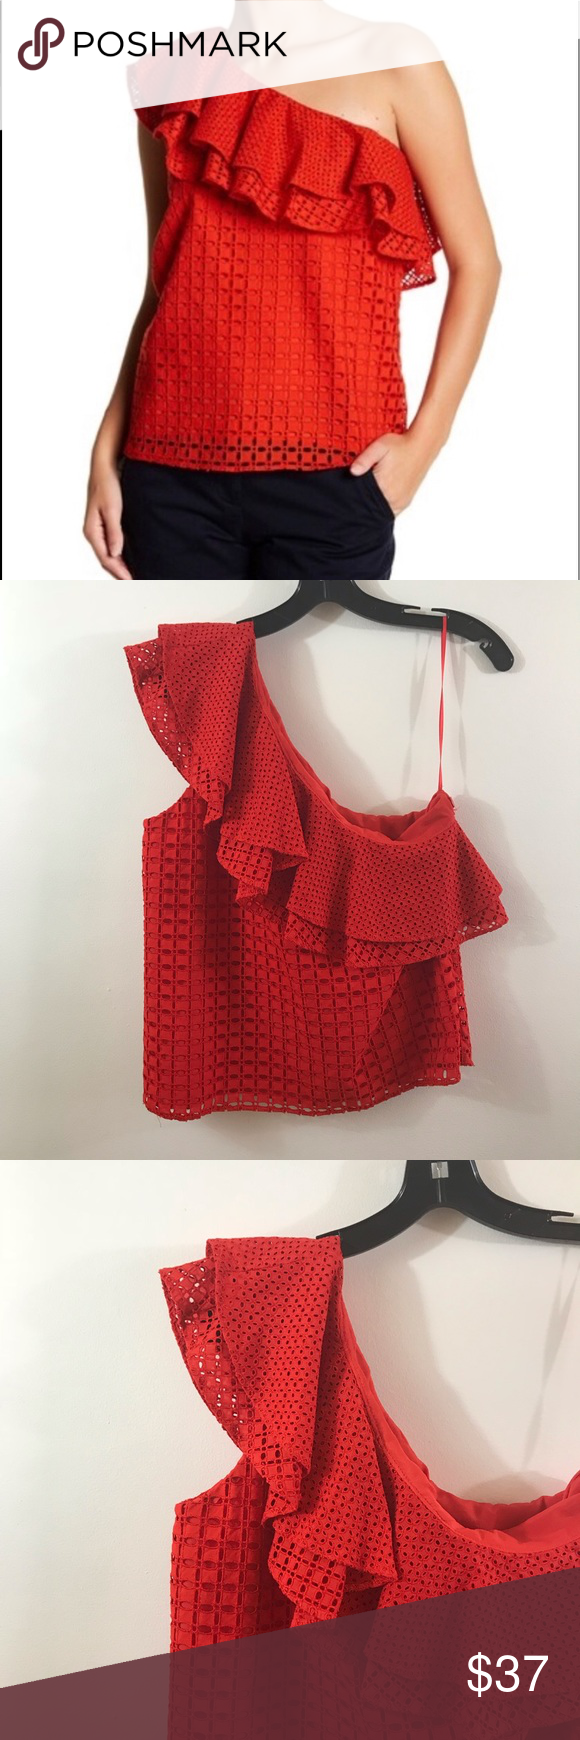 df8dc442d7b79 J. Crew One Shoulder Ruffle Top Eyelet Red Size 6 J. Crew One Shoulder